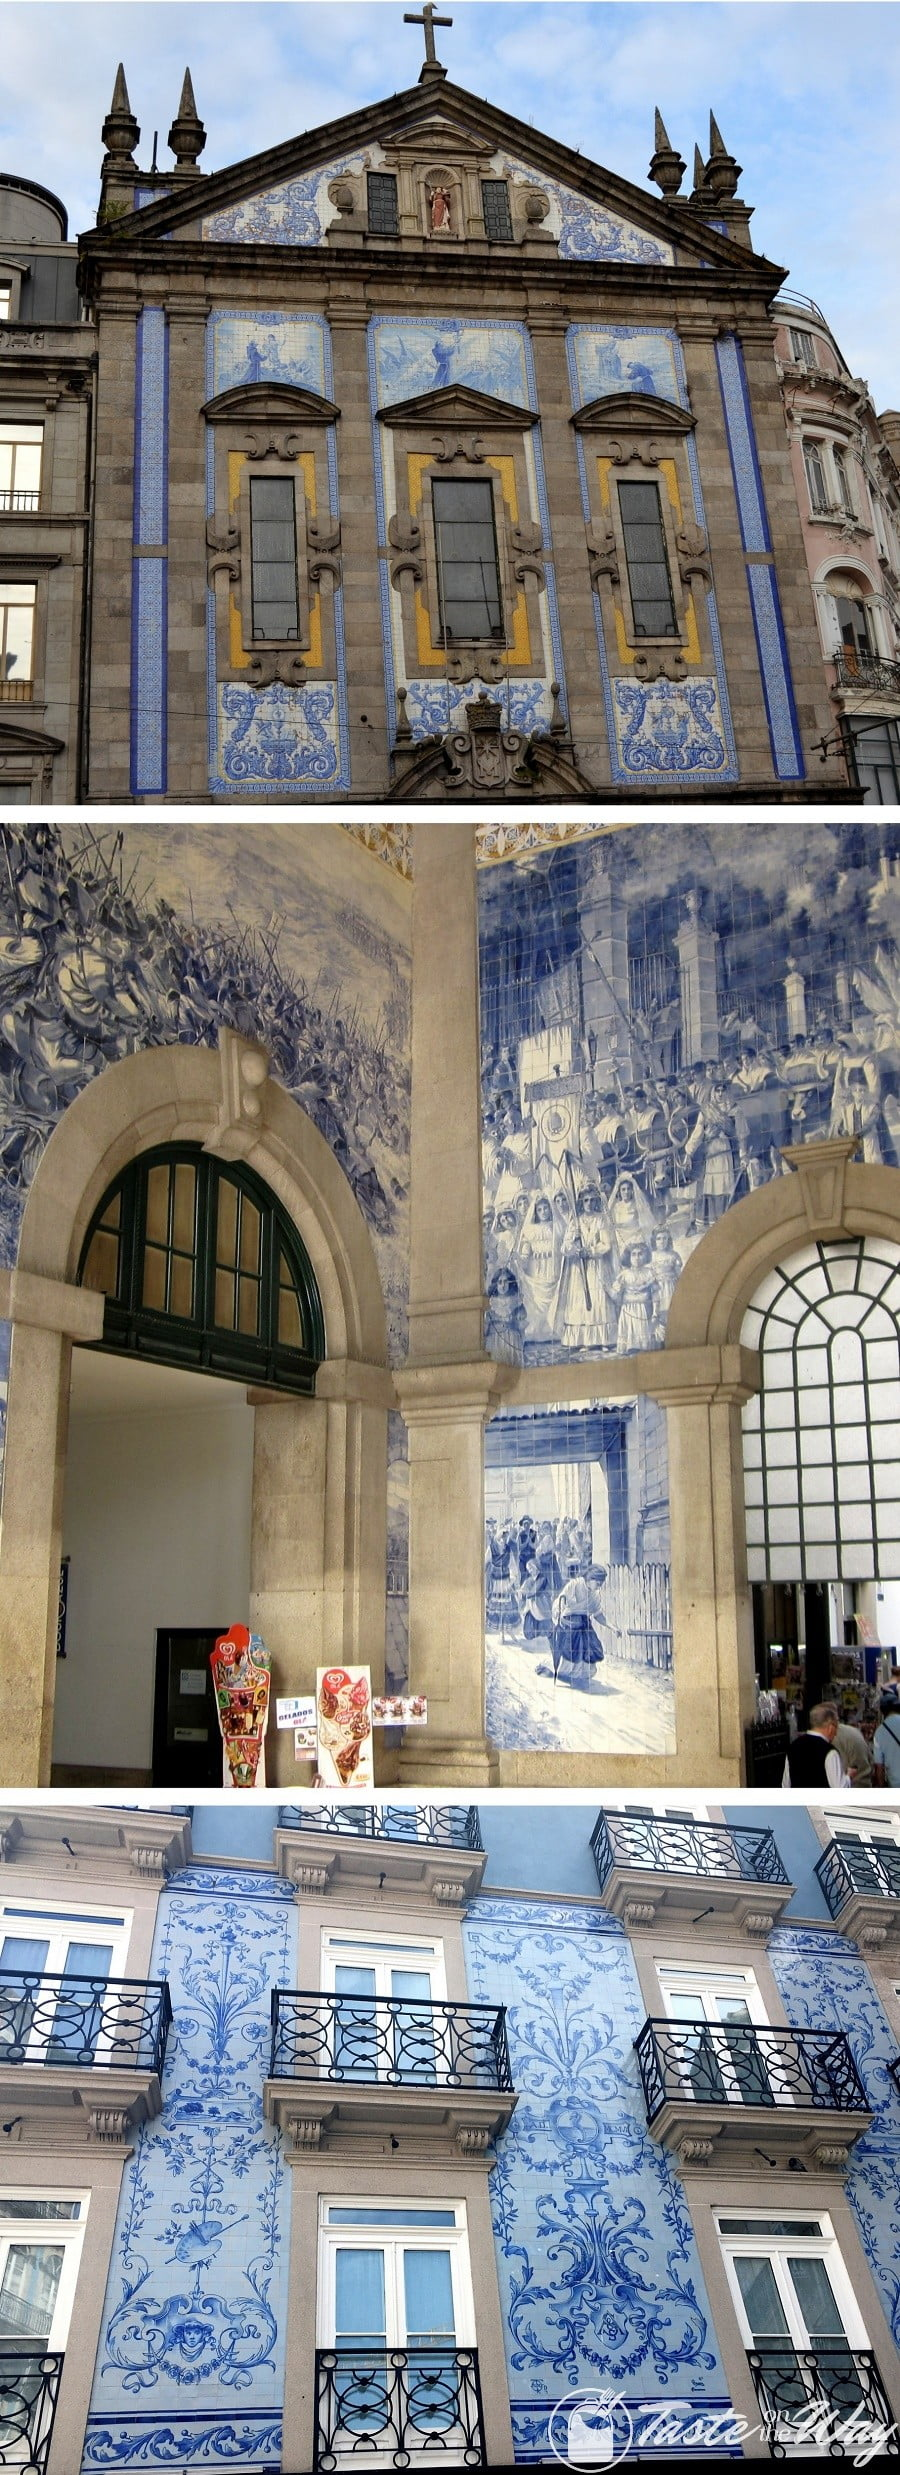 One of the top #thingstodo in #Porto, #Portugal is to catch a train at the Sao Bento Station. Check out for more! #travel #photography @tasteontheway